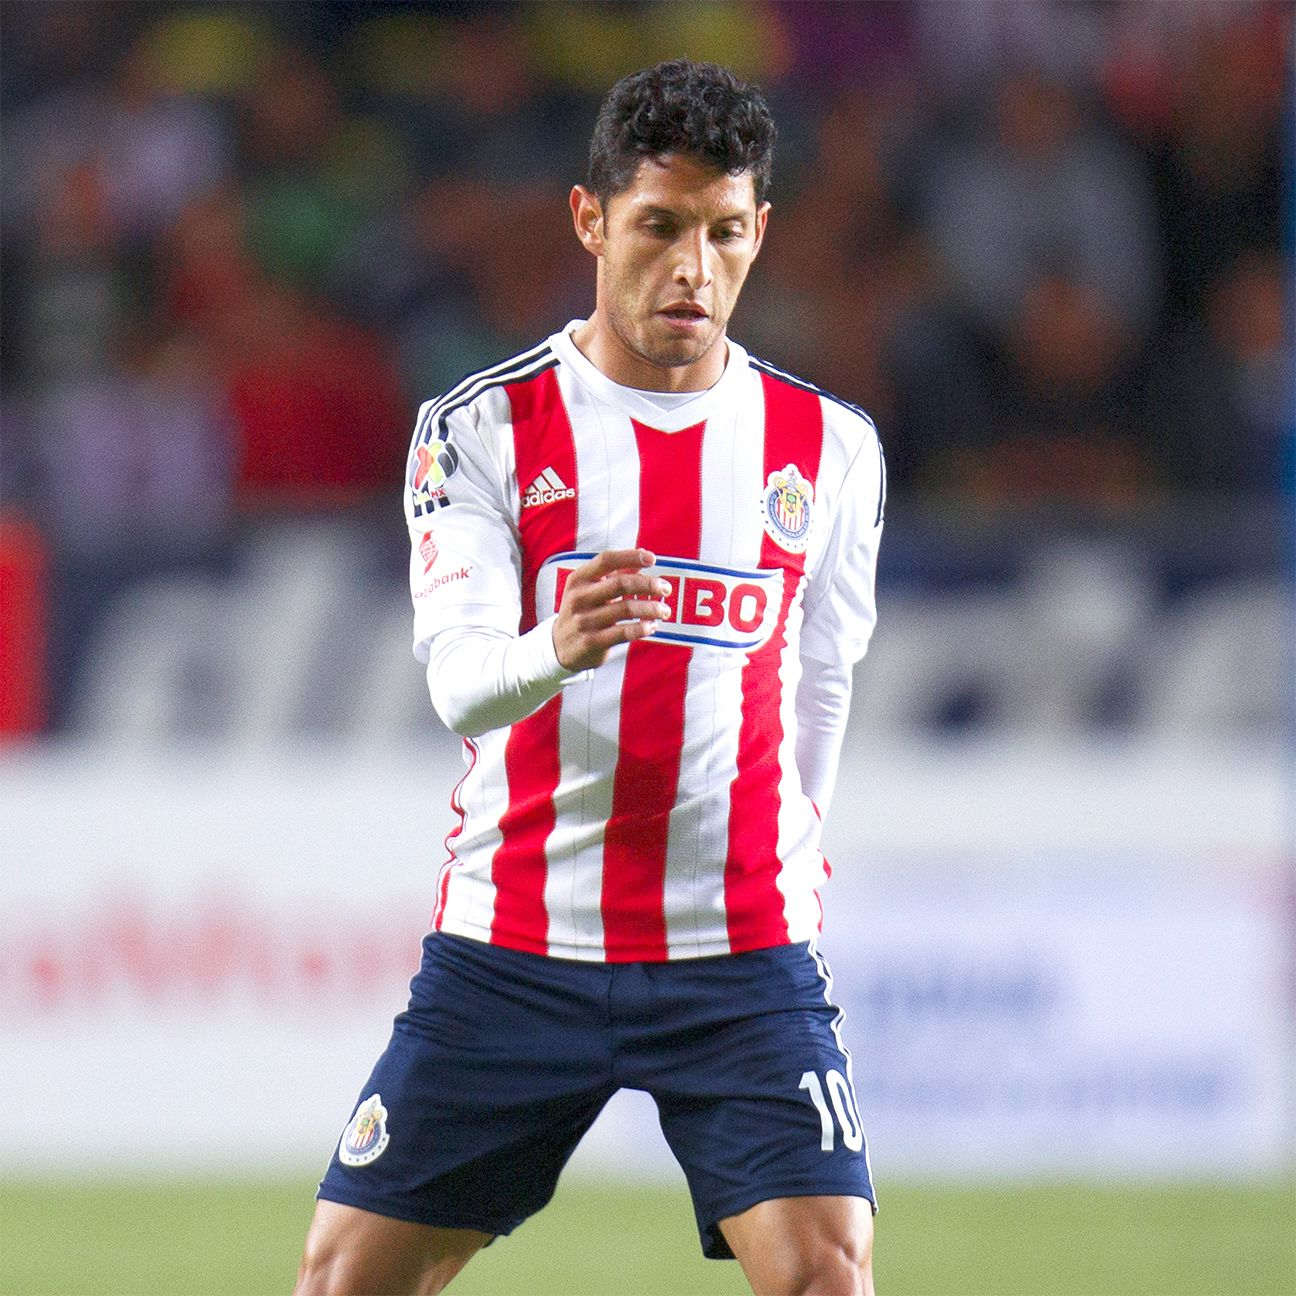 With Marco Fabian out injured, the responsibility to man Chivas' left flank may well fall to Angel Reyna.